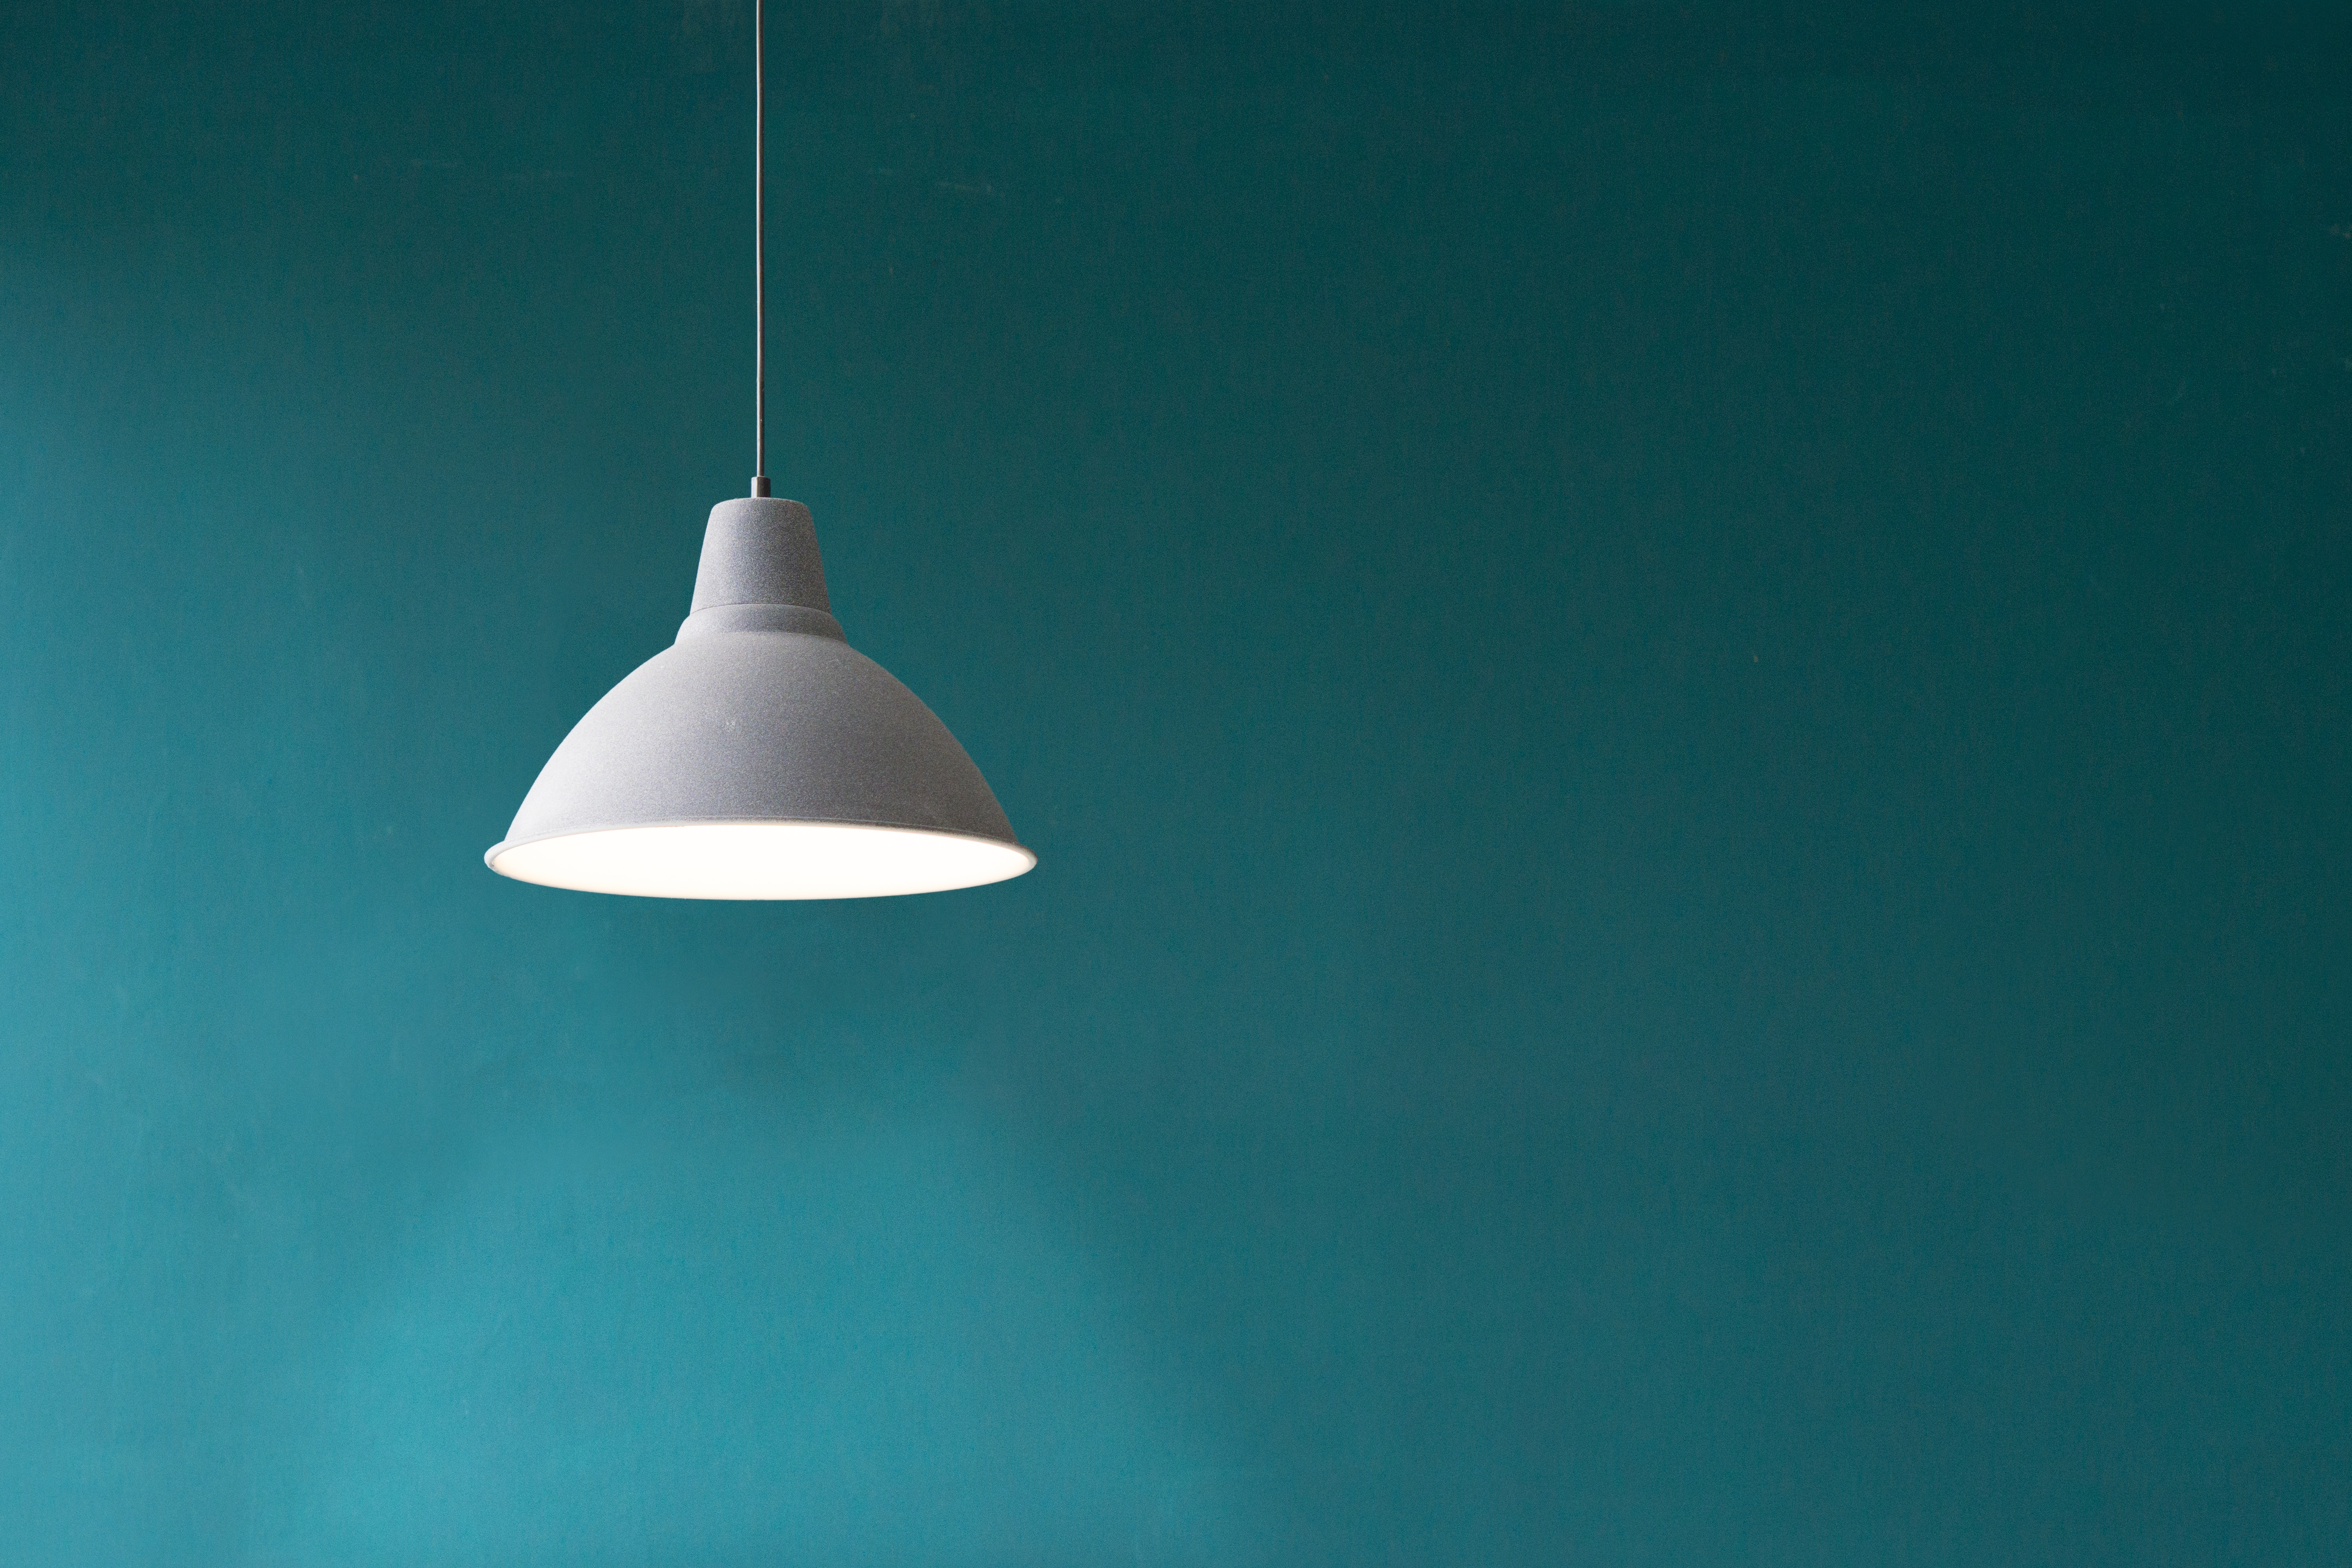 white pendant light in front of green wall